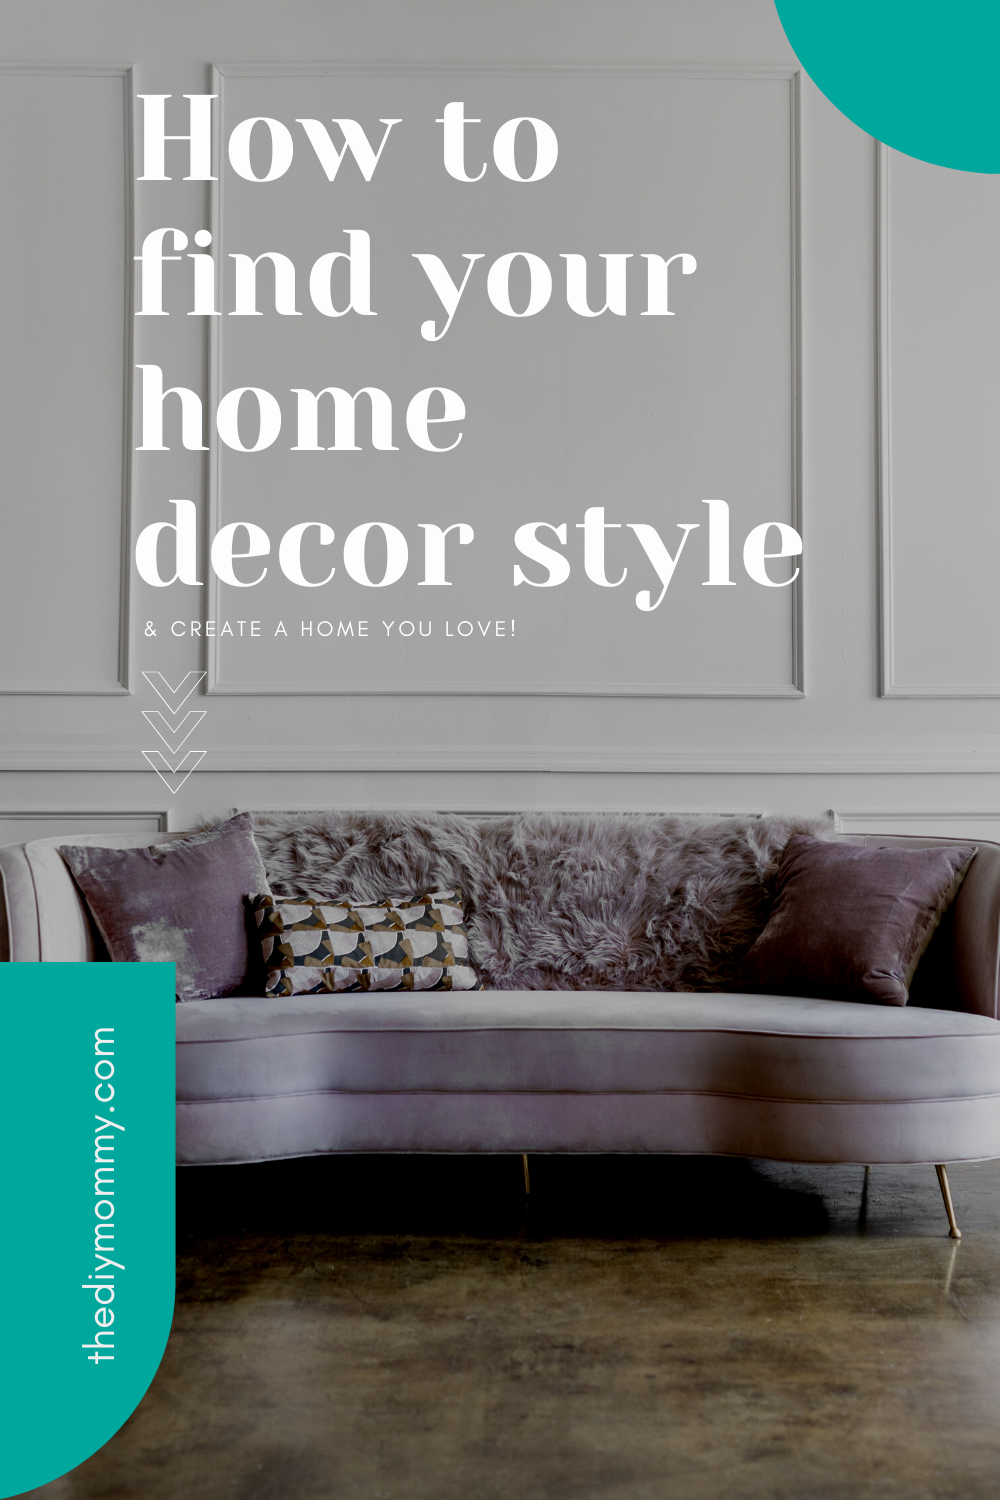 Learn how to find your home decor style and create a home you absolutely love! Free guide and quiz.